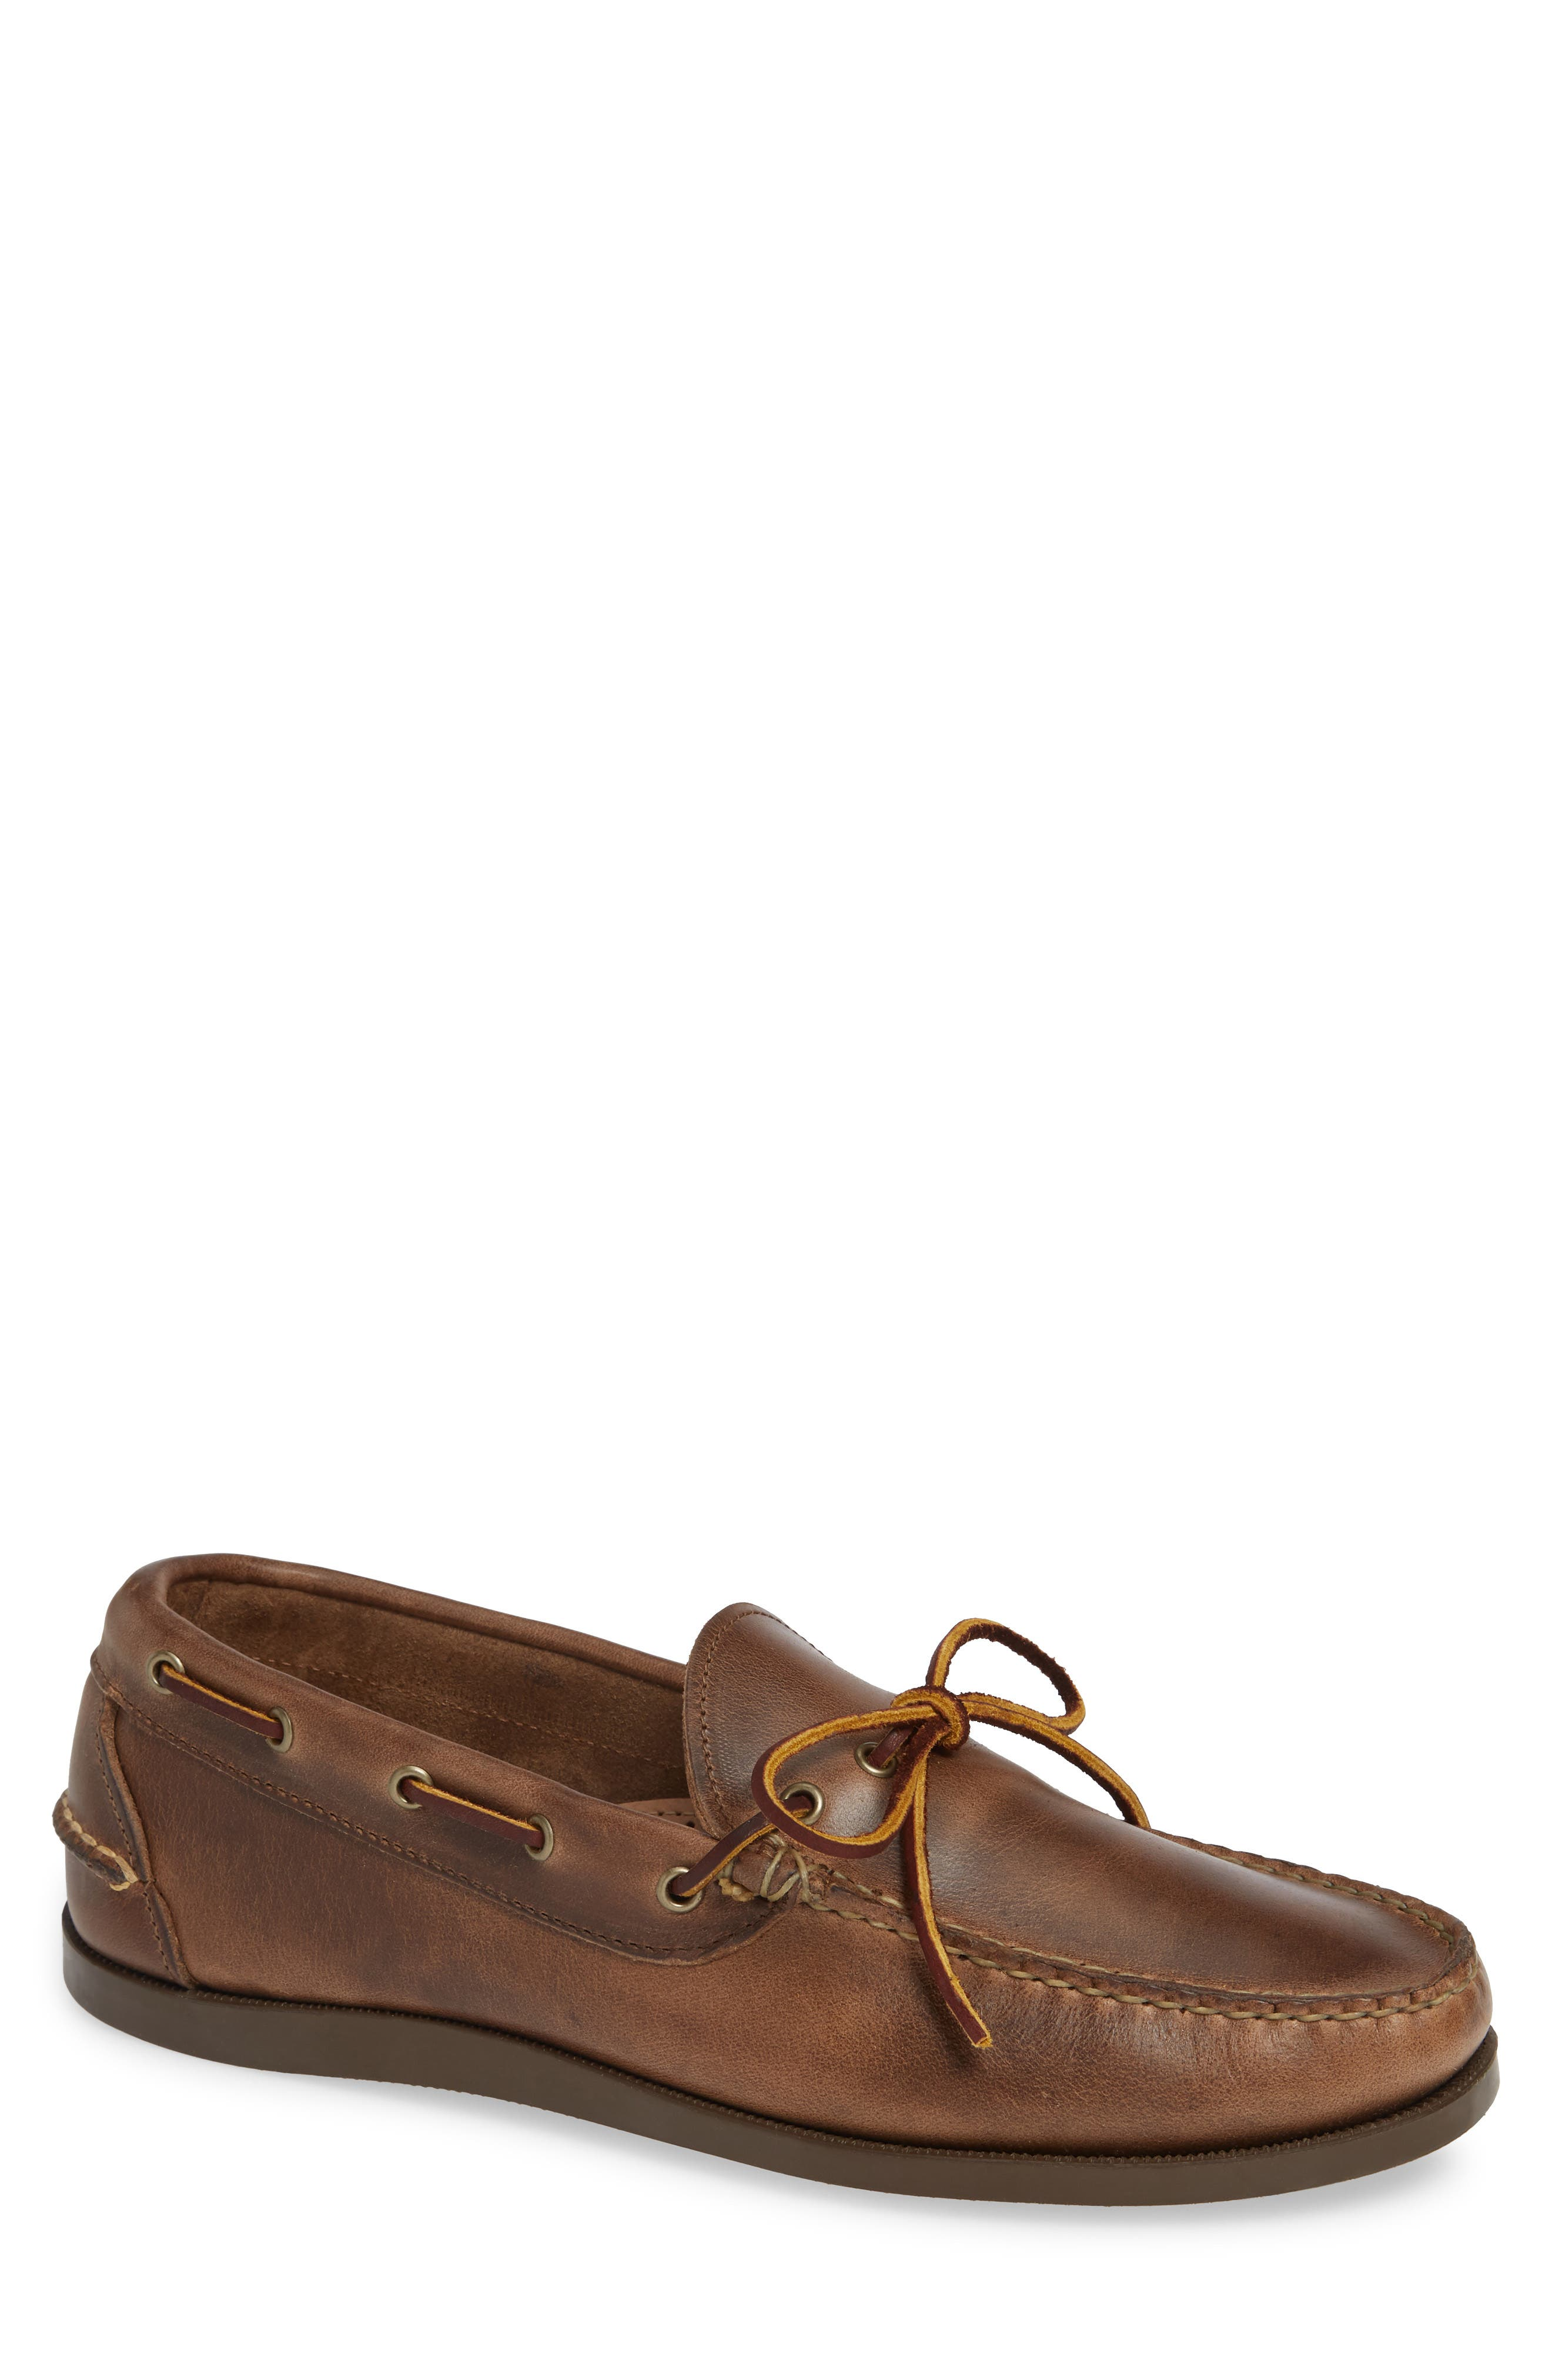 Camp Moccasin,                             Main thumbnail 1, color,                             NATURAL LEATHER